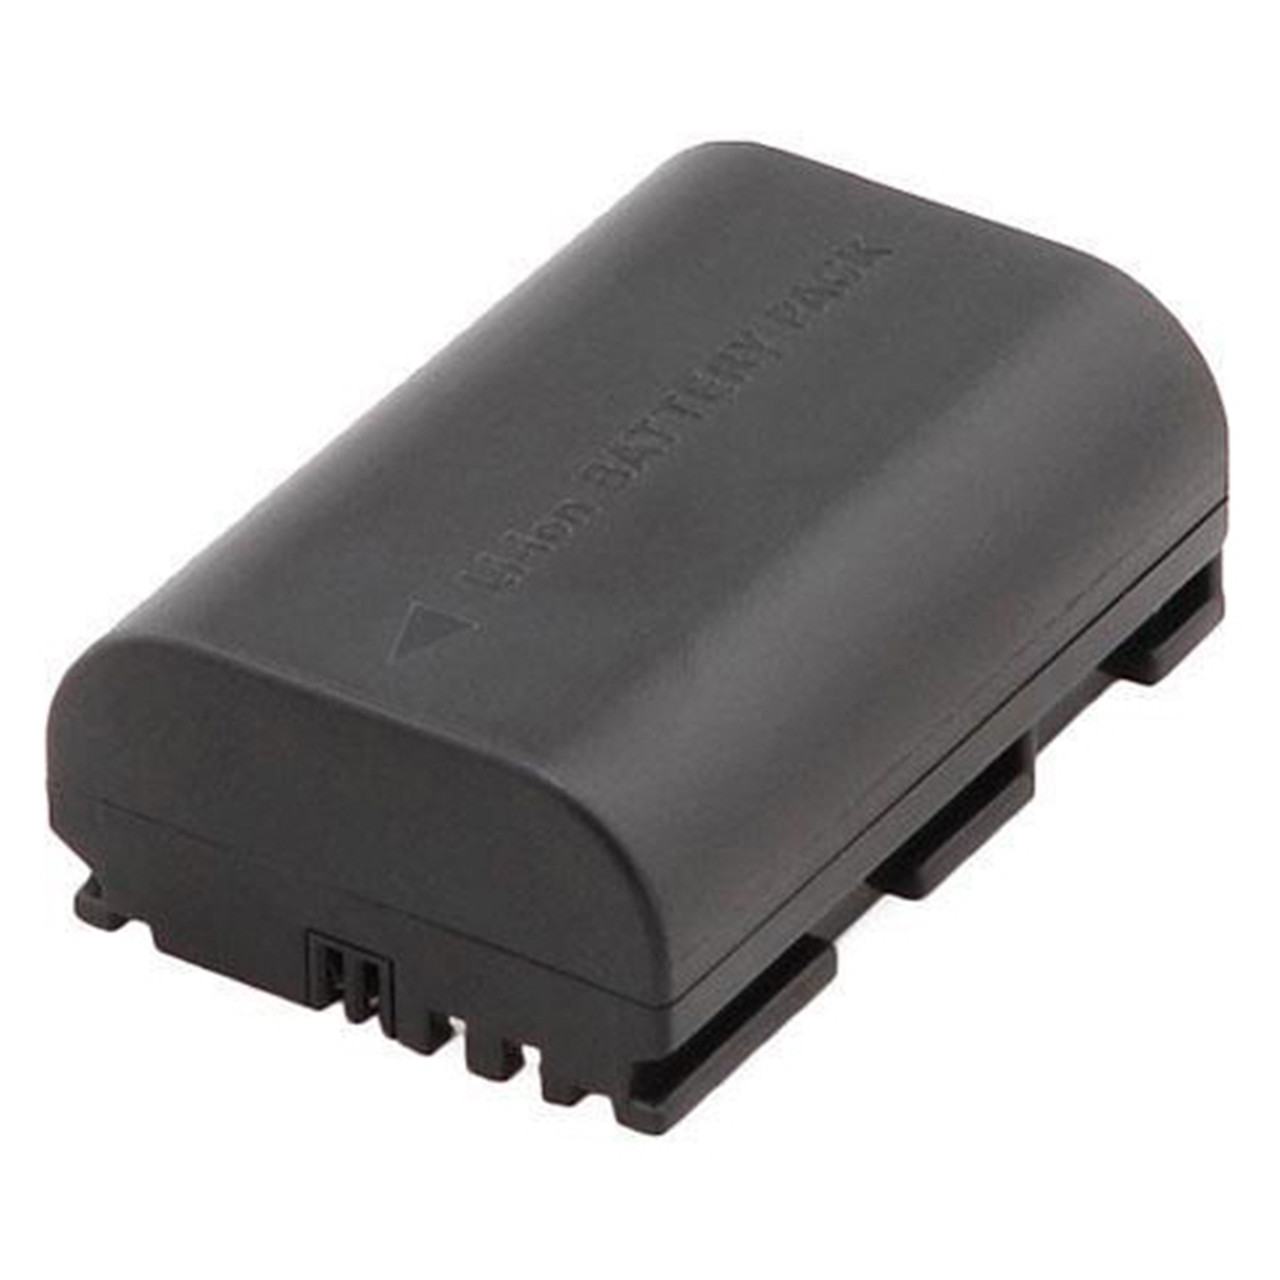 POWER2000 CANON LP-E6 BATTERY REPLACEMENT (ACD-415)